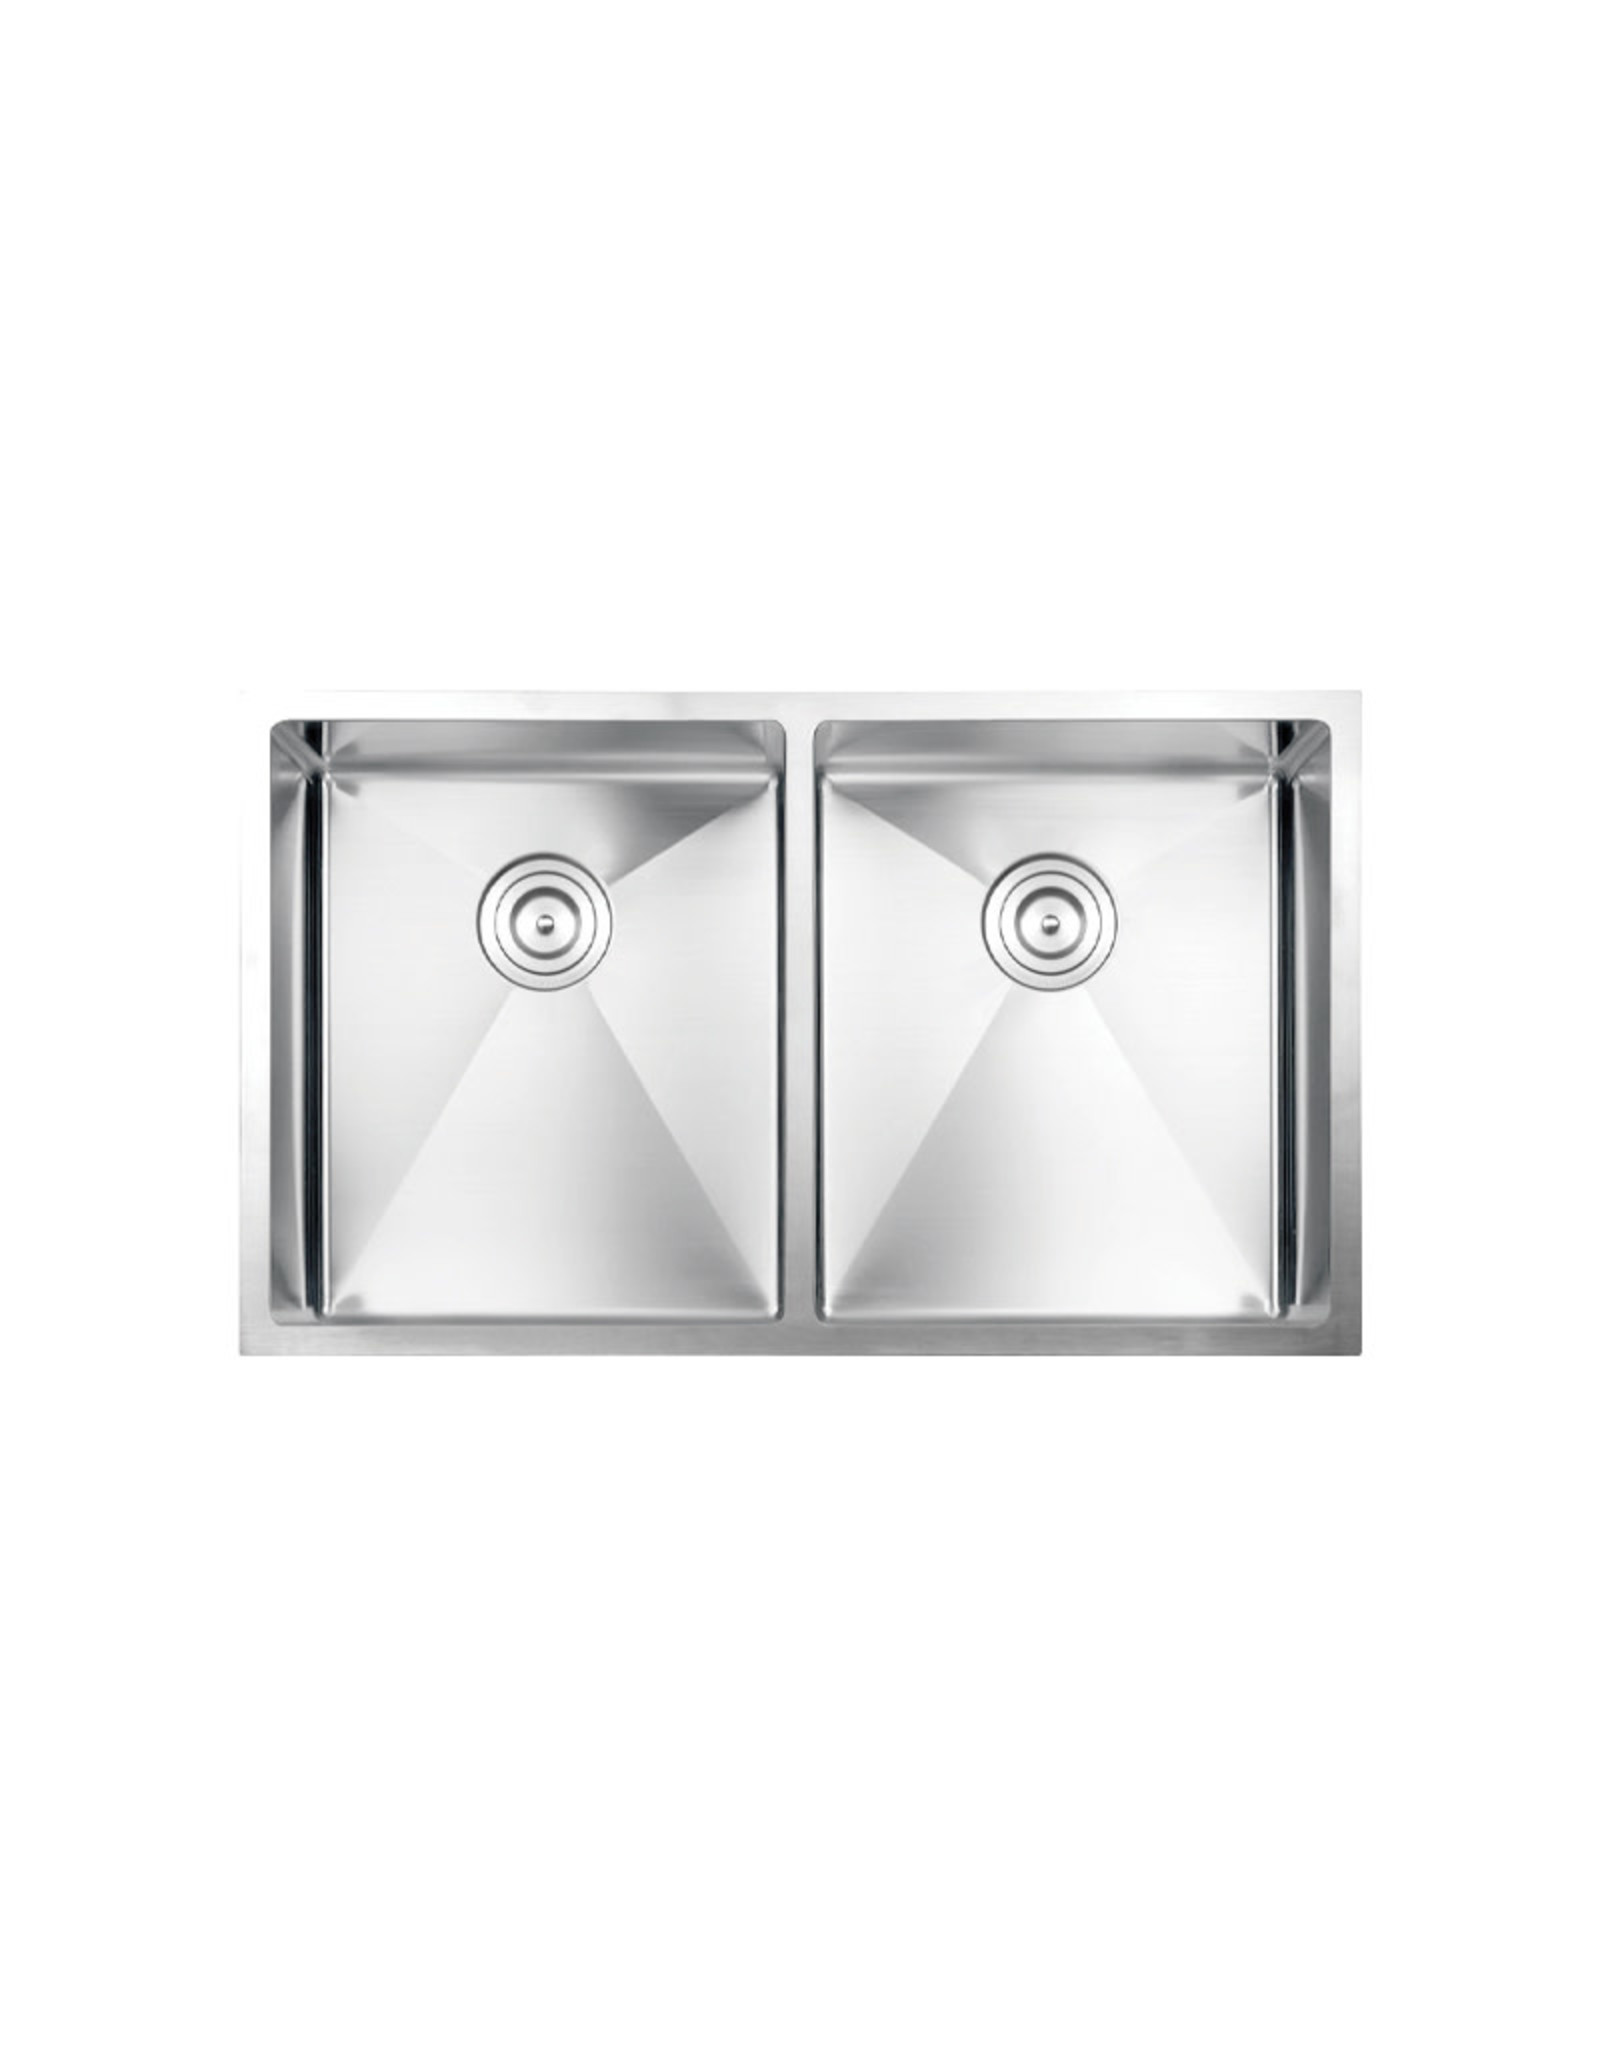 "Vogt Vogt Bludenz 16R Undermount Kitchen Sink Double Bowl (50/50) 32"" x 18"" x 10"""